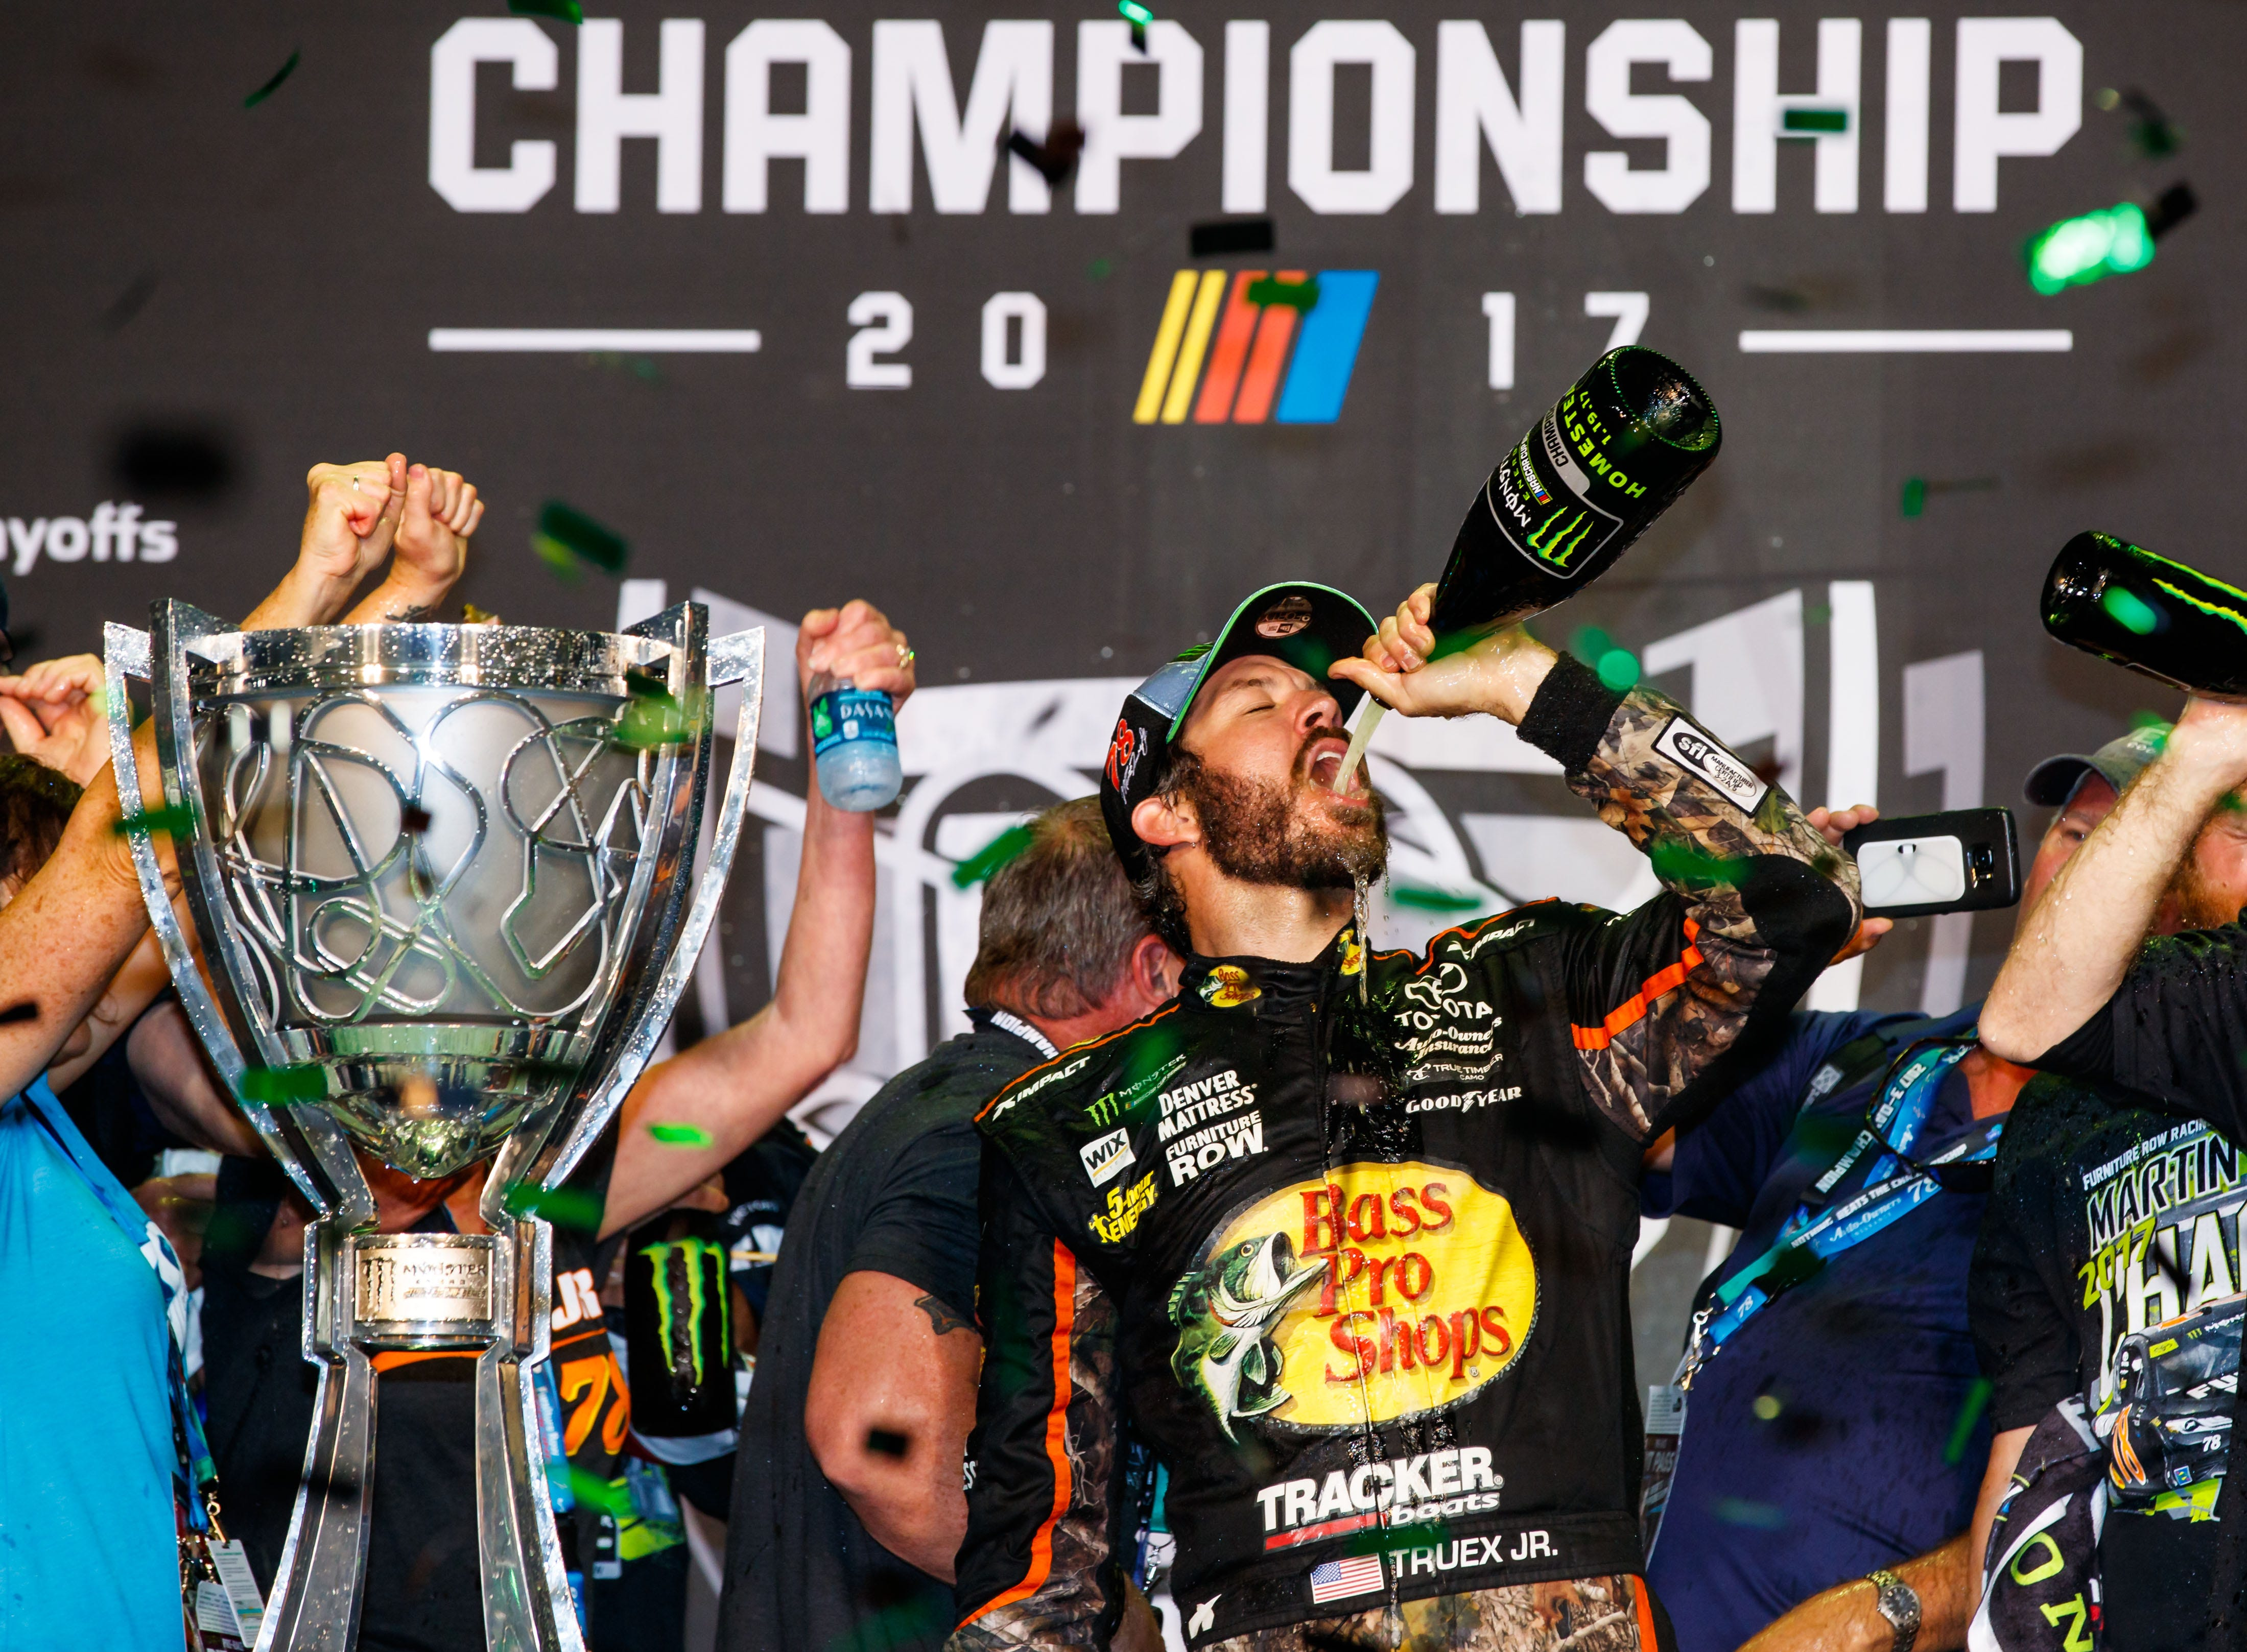 NASCAR Cup championship race at Homestead 2018: Start time, lineup, TV schedule, more